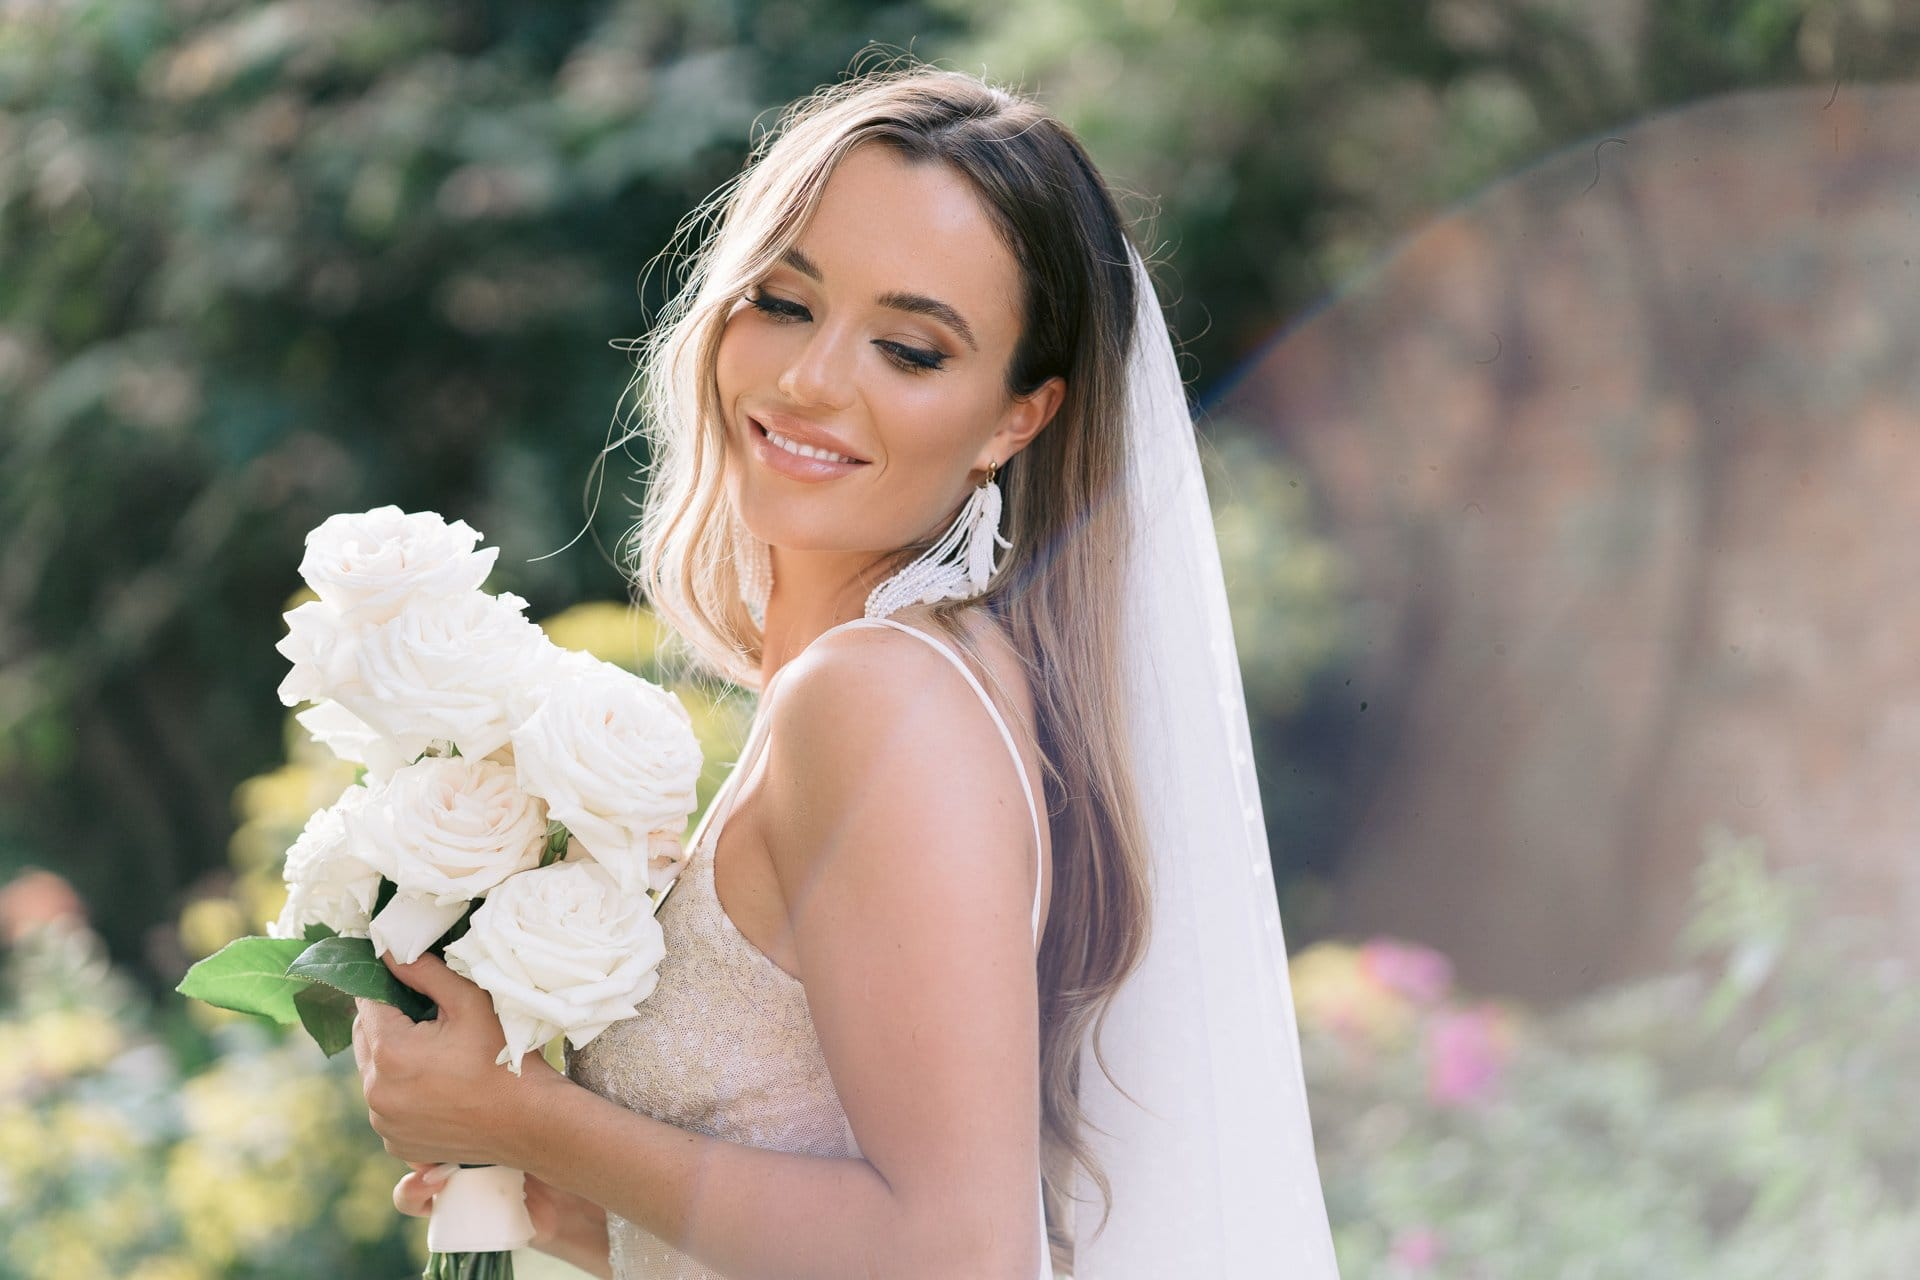 portrait of a bride holding a white bouquet outside in the sunlight